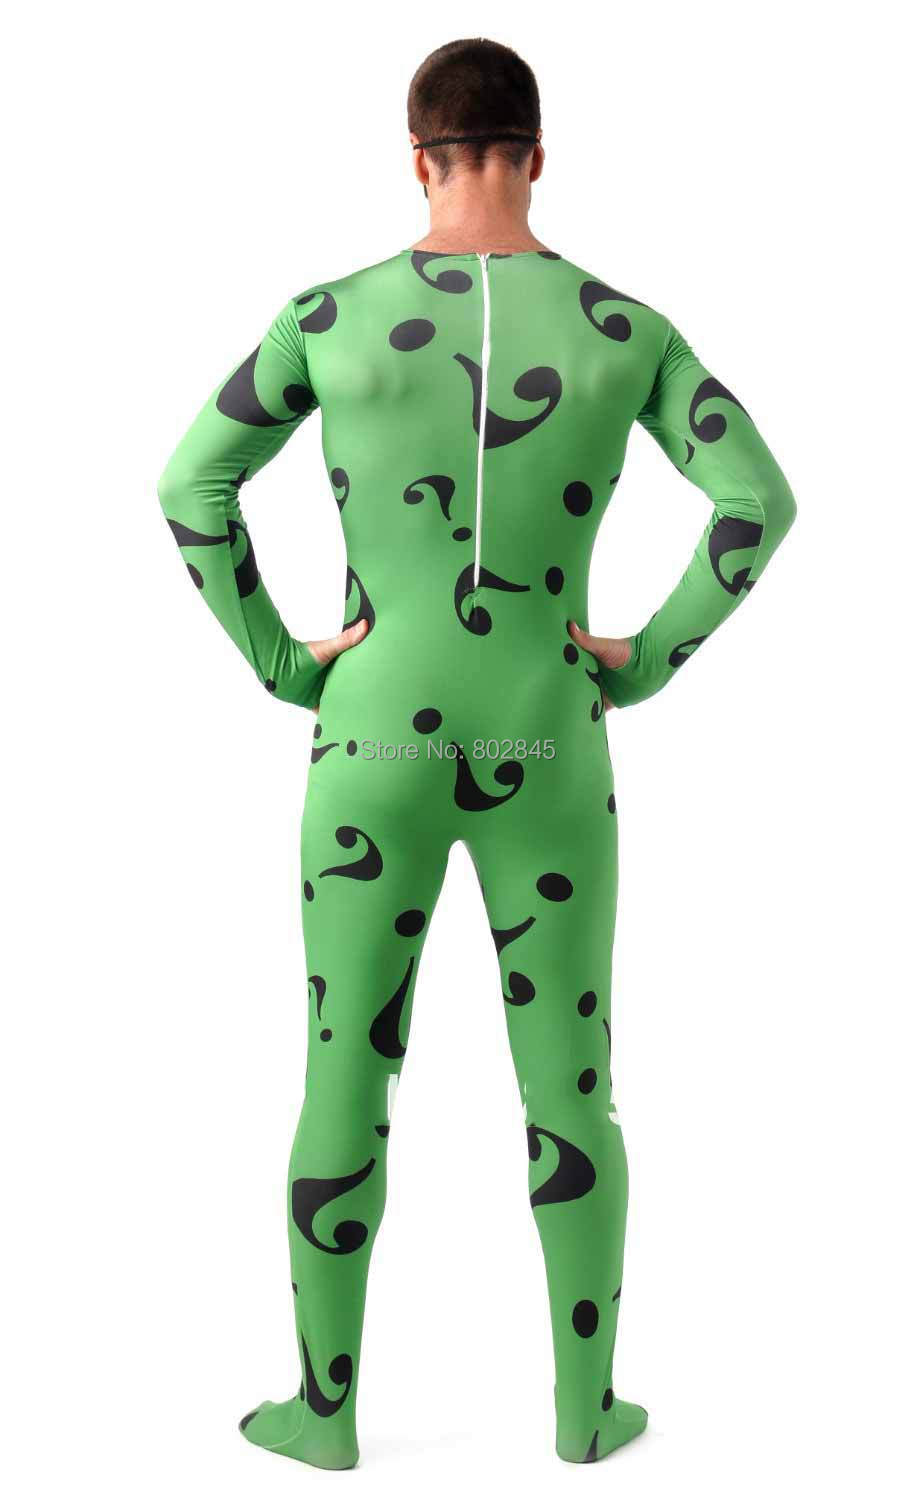 Halloween Costumes Full Body Suits Suits Halloween Costumes